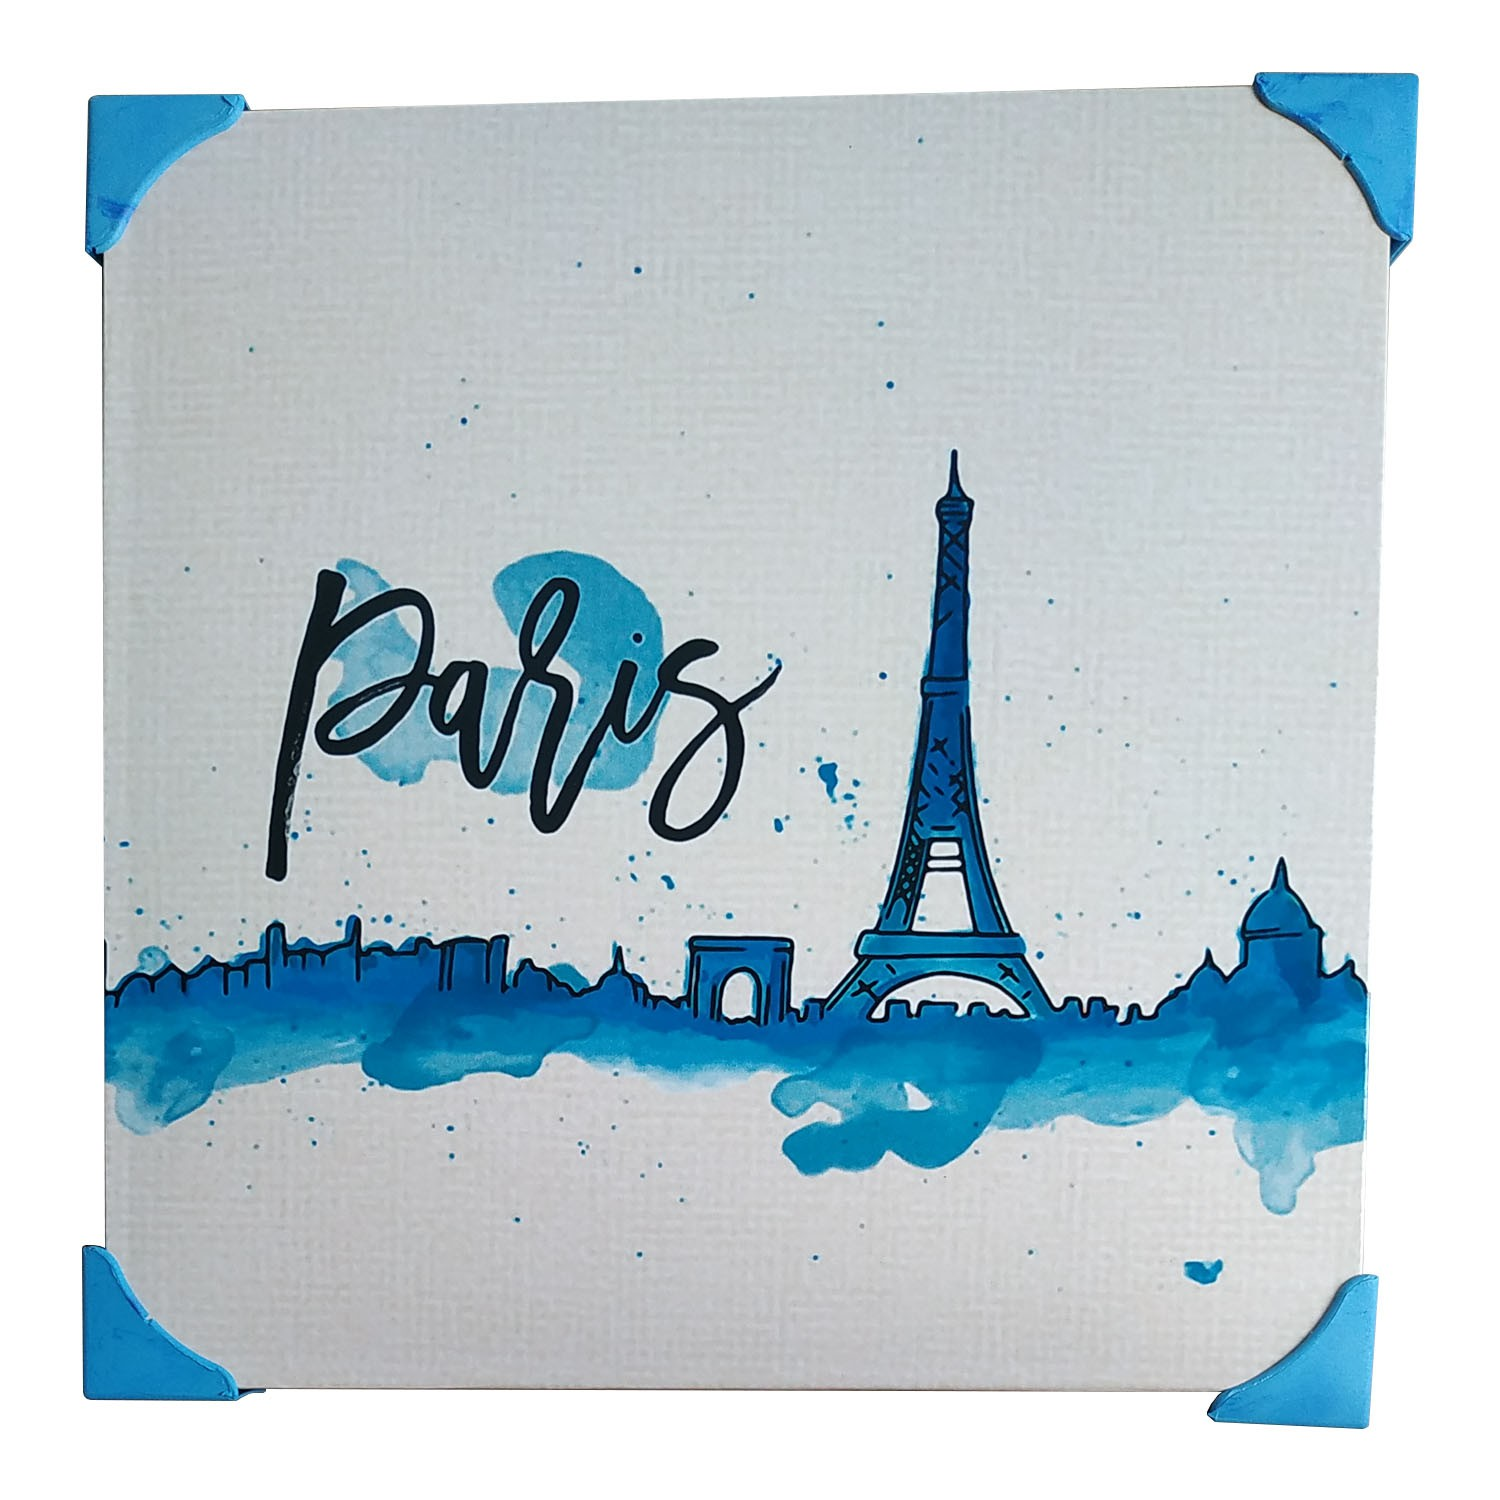 Quadro De Metal Placa Decorativa Metalizada 20cm x 20cm - Paris 2